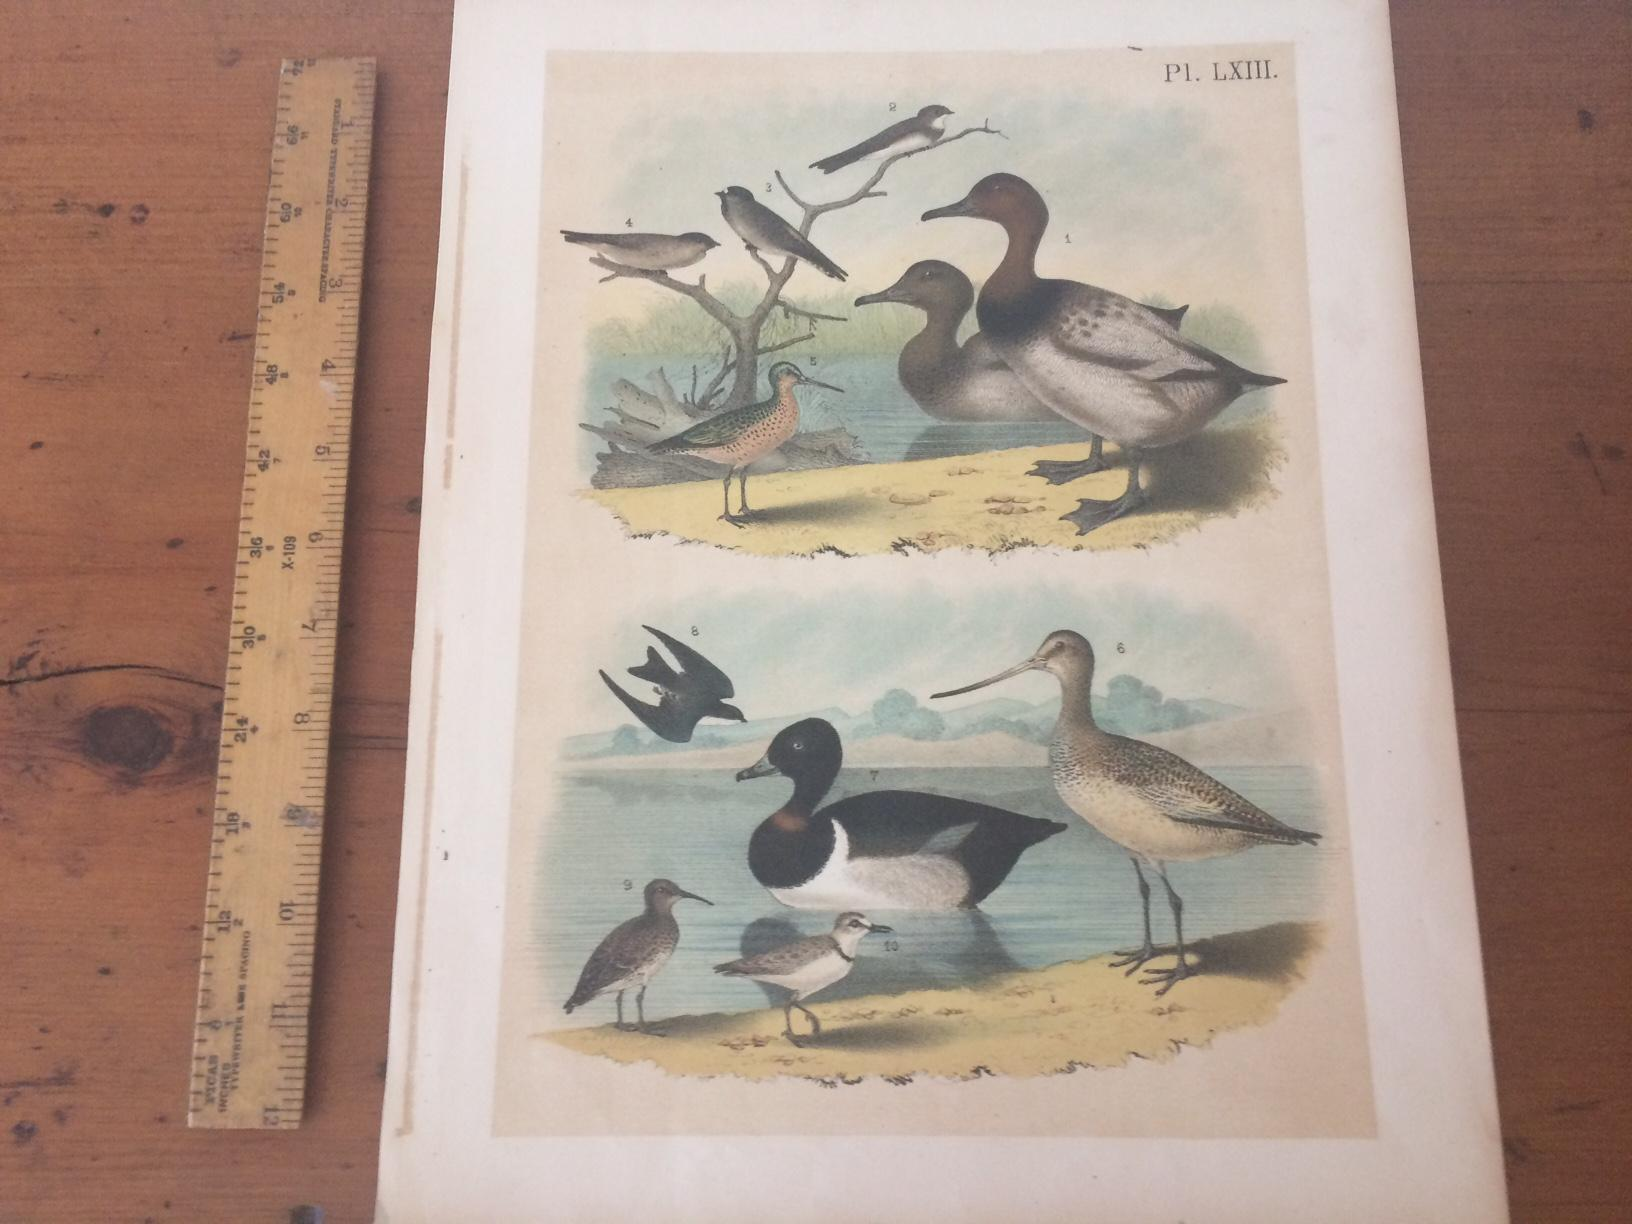 PLATE LXIII: CANVAS-BACK DUCK, BANK SWALLOW, CLIFF SWALLOW, ROUGH-WINGED SWALLOW, RED-BREASTED SNIPE, GREAT MARBLED GODWIT, RING-NECKED DUCK, WHITE-B (bi_22734905045) photo